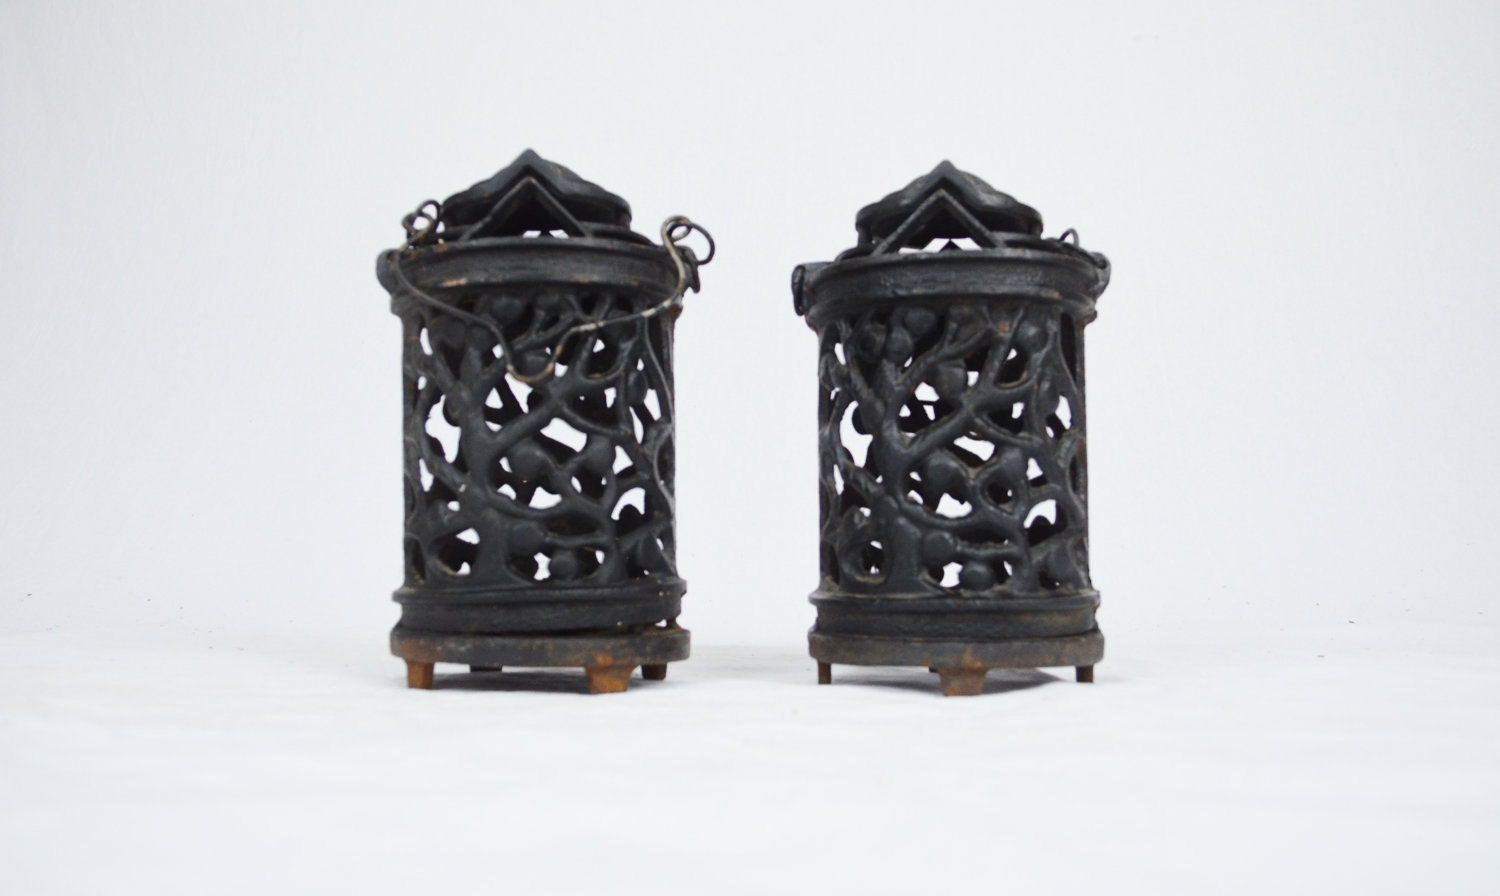 Antique Cast Iron Hanging Candle Lanterns by LuccaBalesVintage